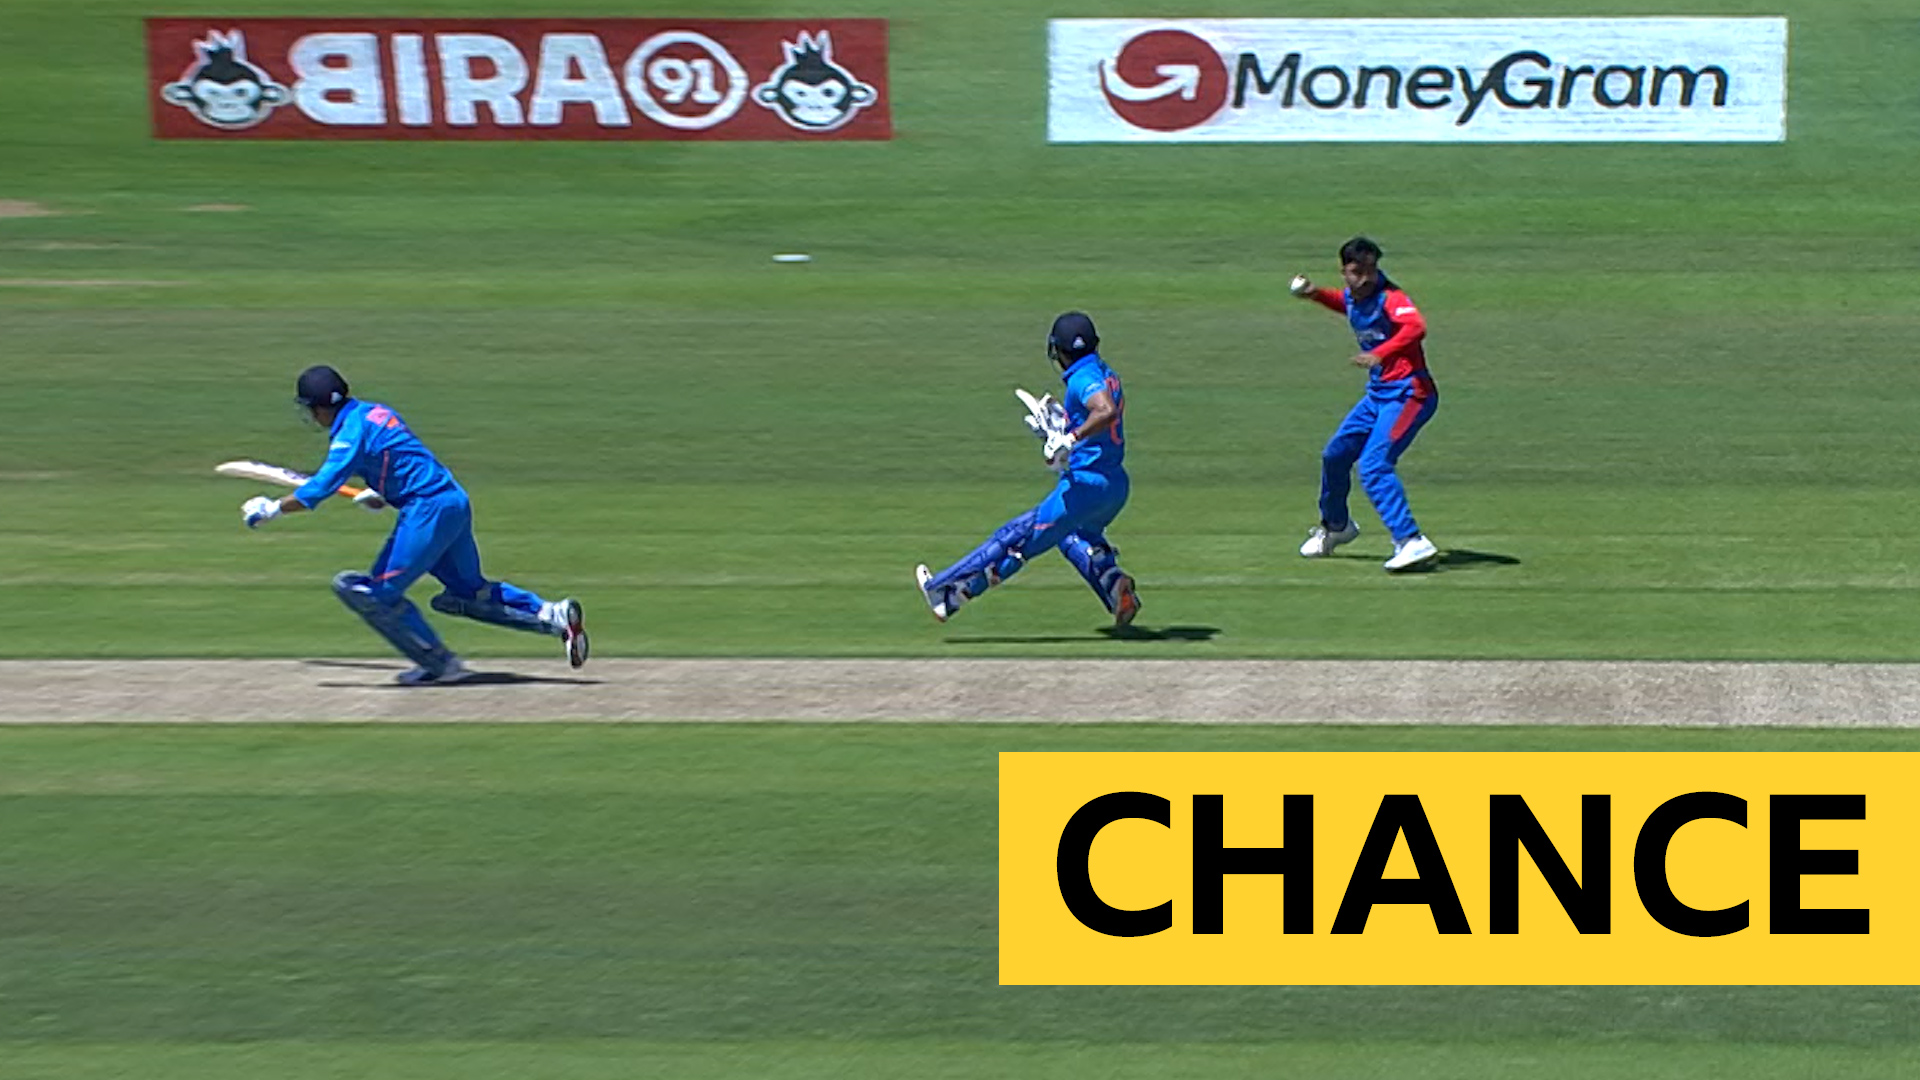 Cricket World Cup: India's MS Dhoni & Kedar Jadhav survive run out chance v Afghanistan